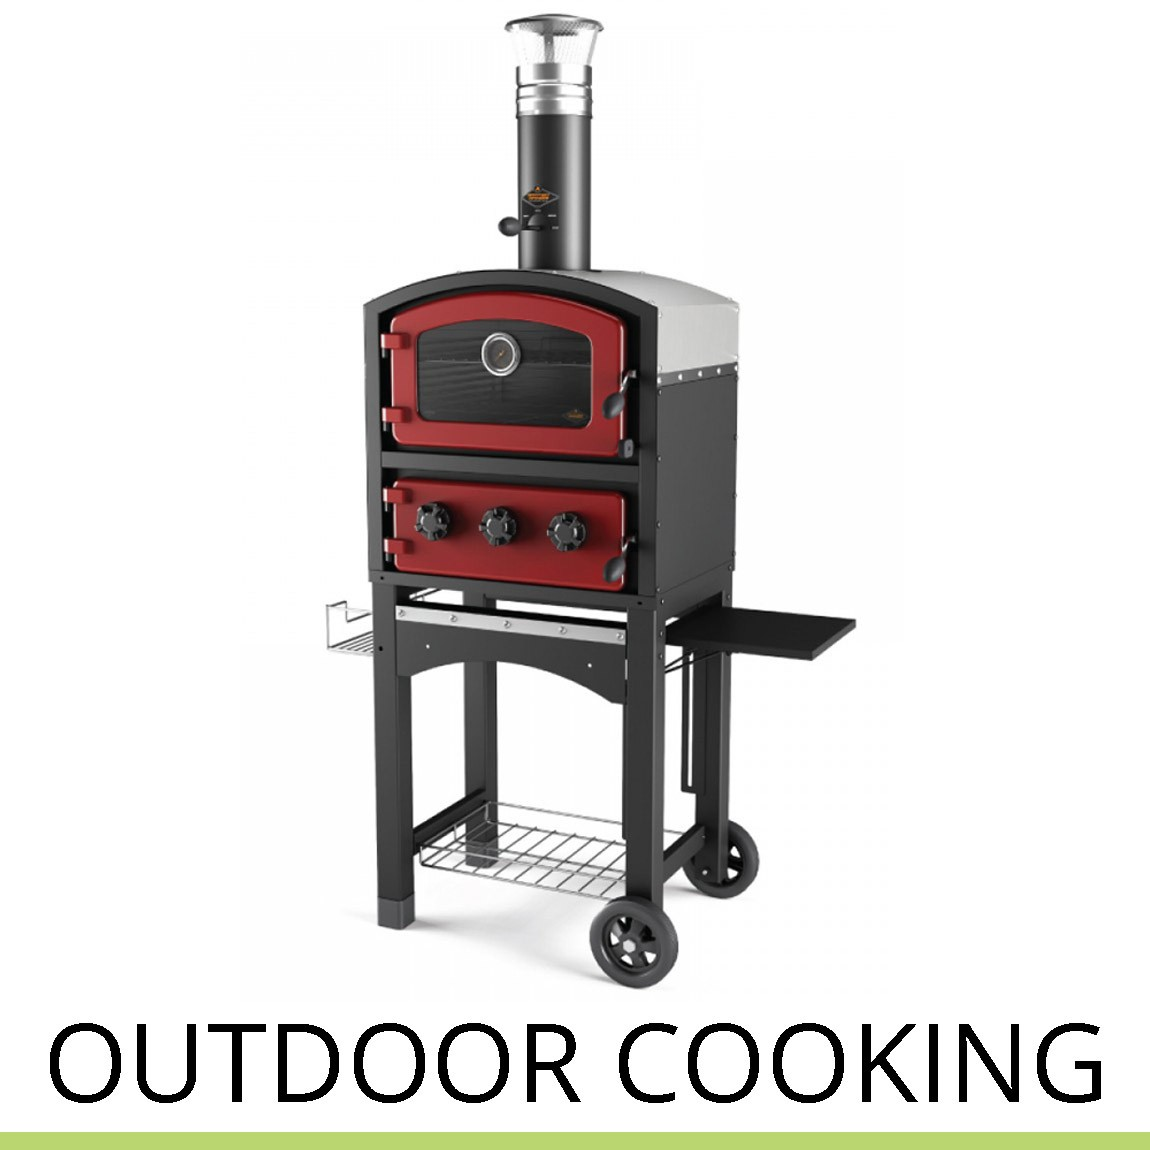 Outdoor Cooking/Smokers